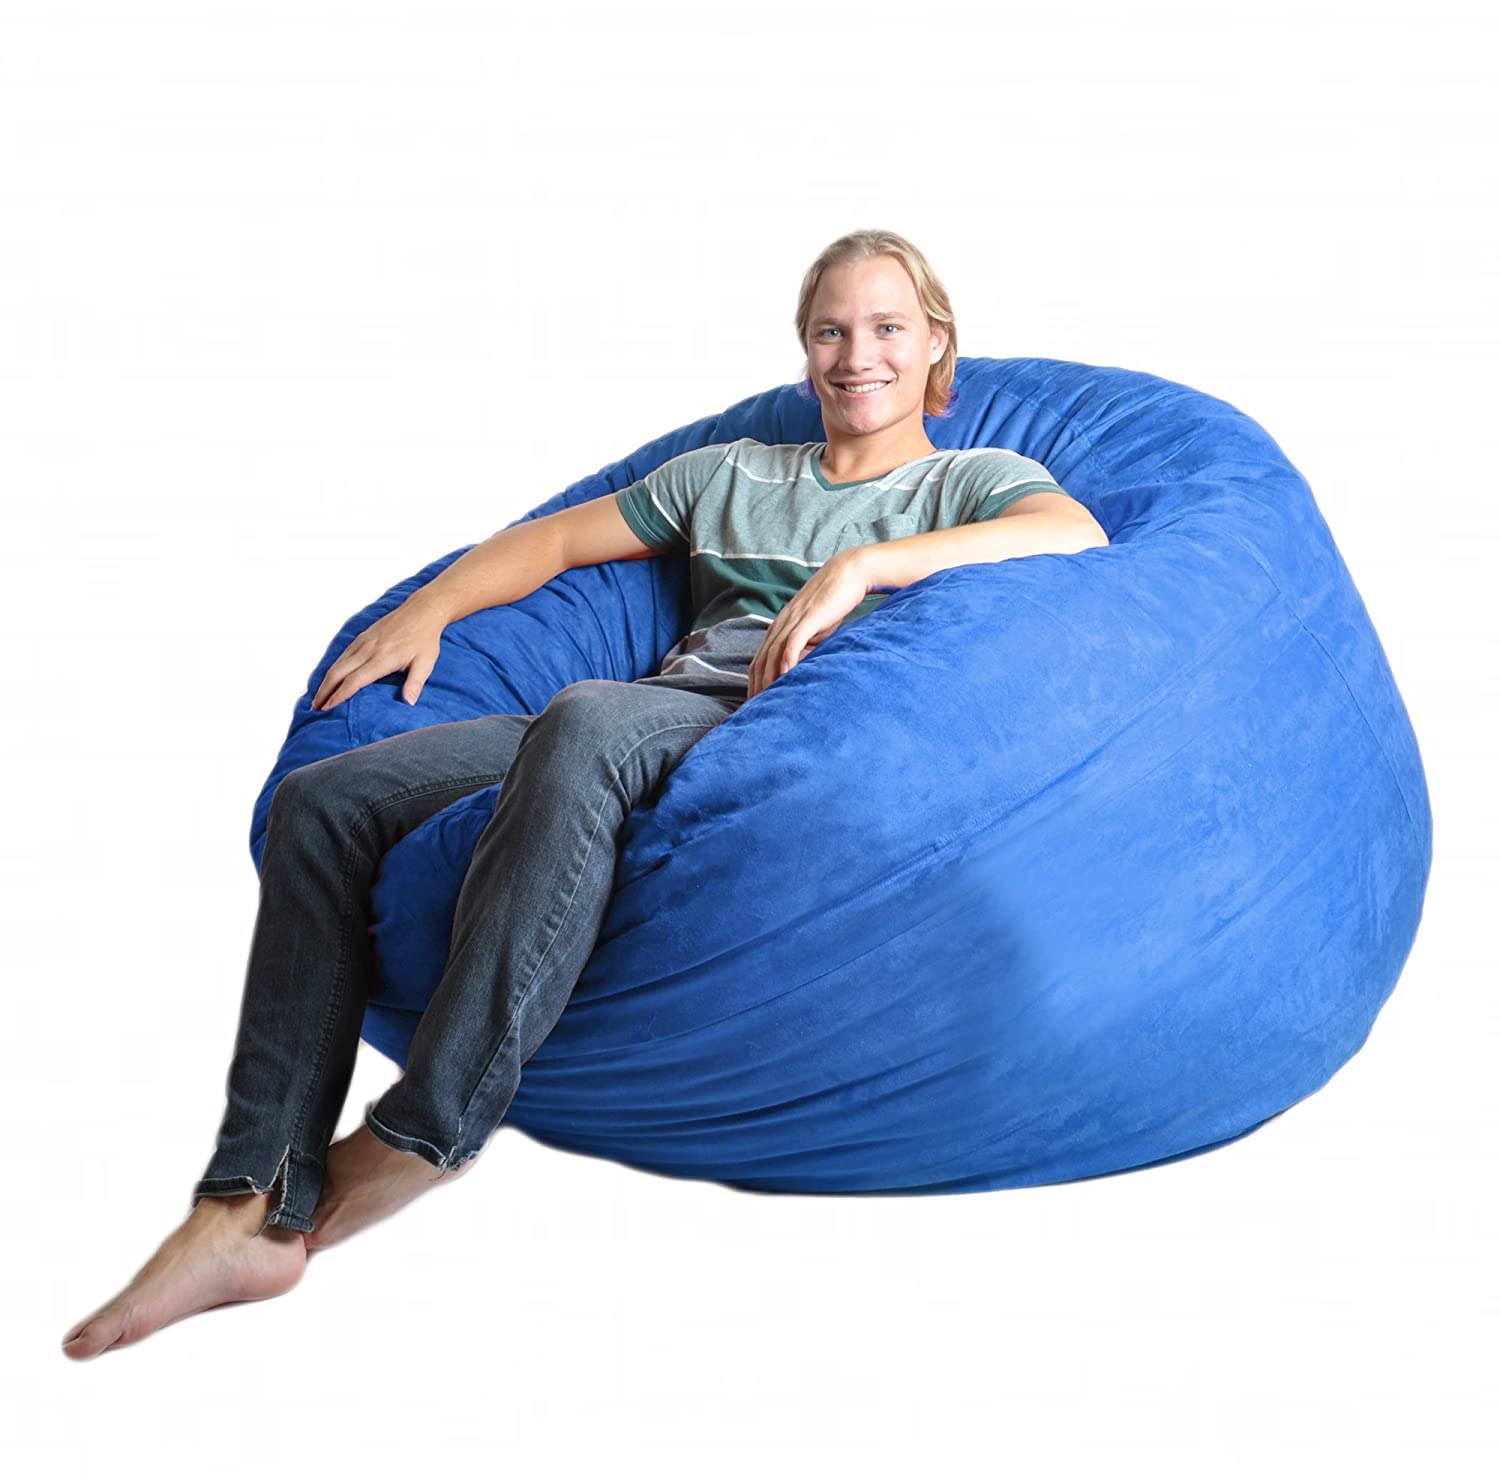 Amazoncom SLACKER sack 5Feet Foam Microsuede Beanbag Chair Large